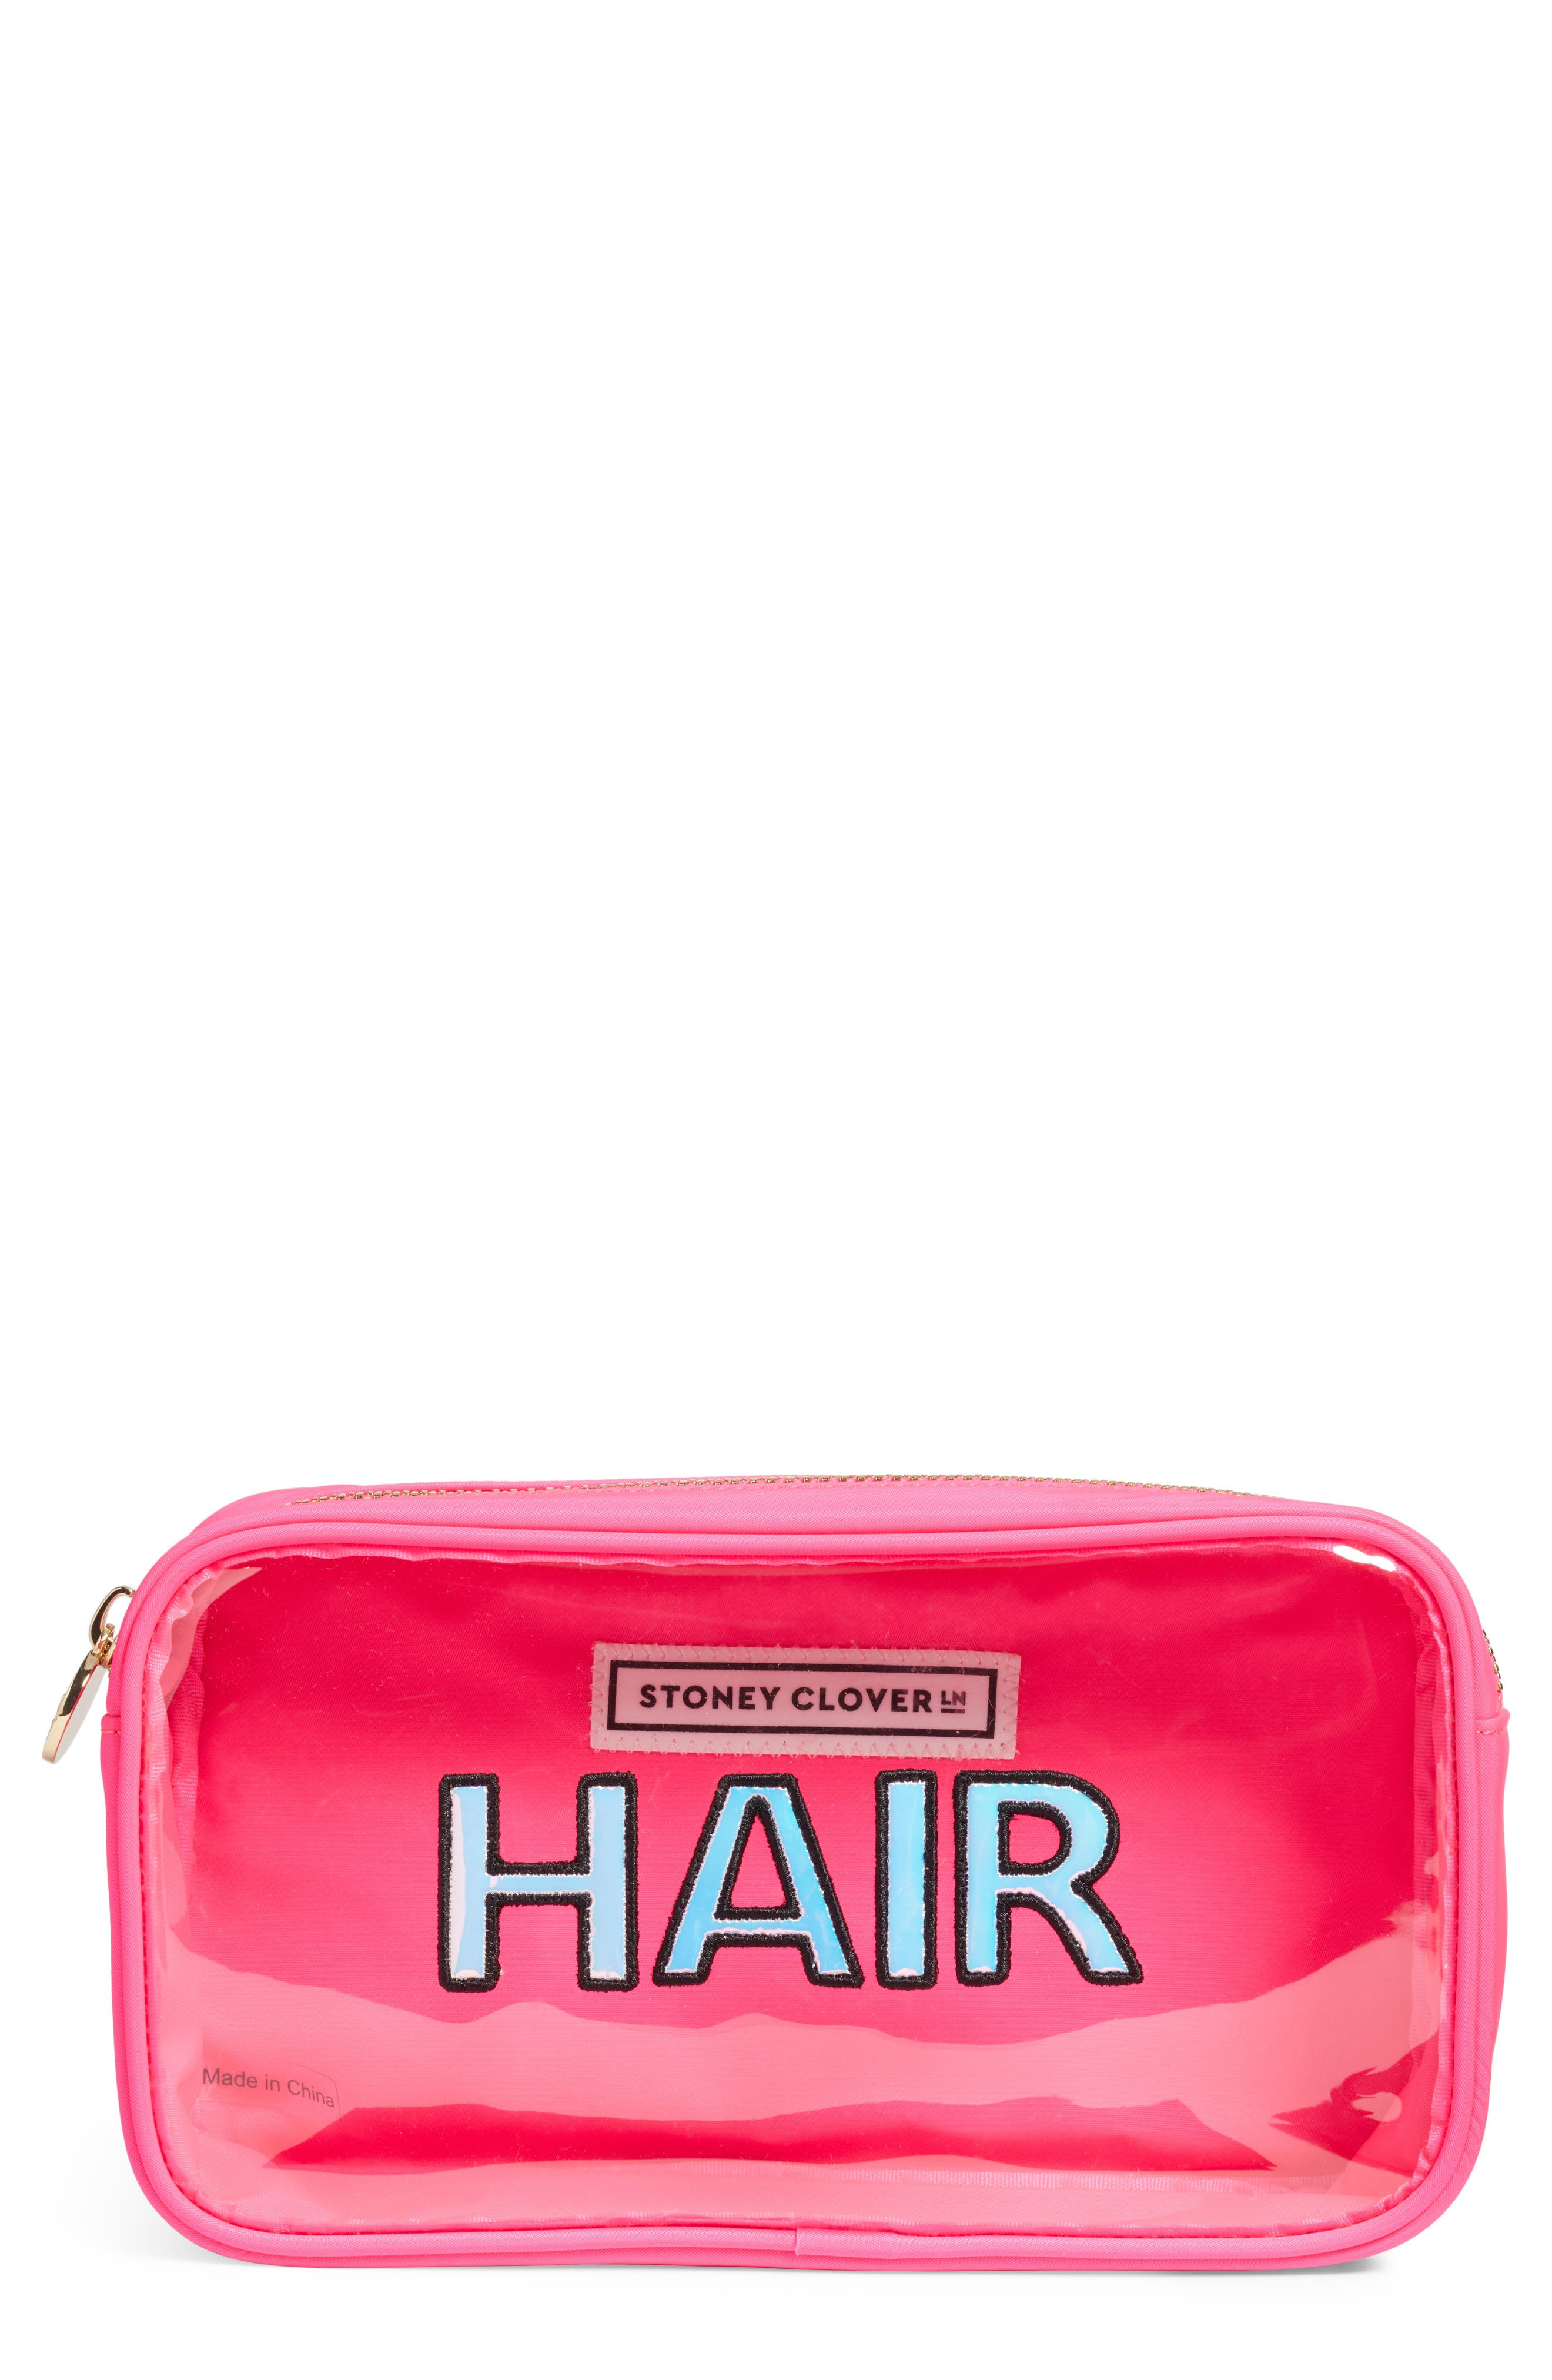 STONEY CLOVER LANE Small Pouch in Neon Pink